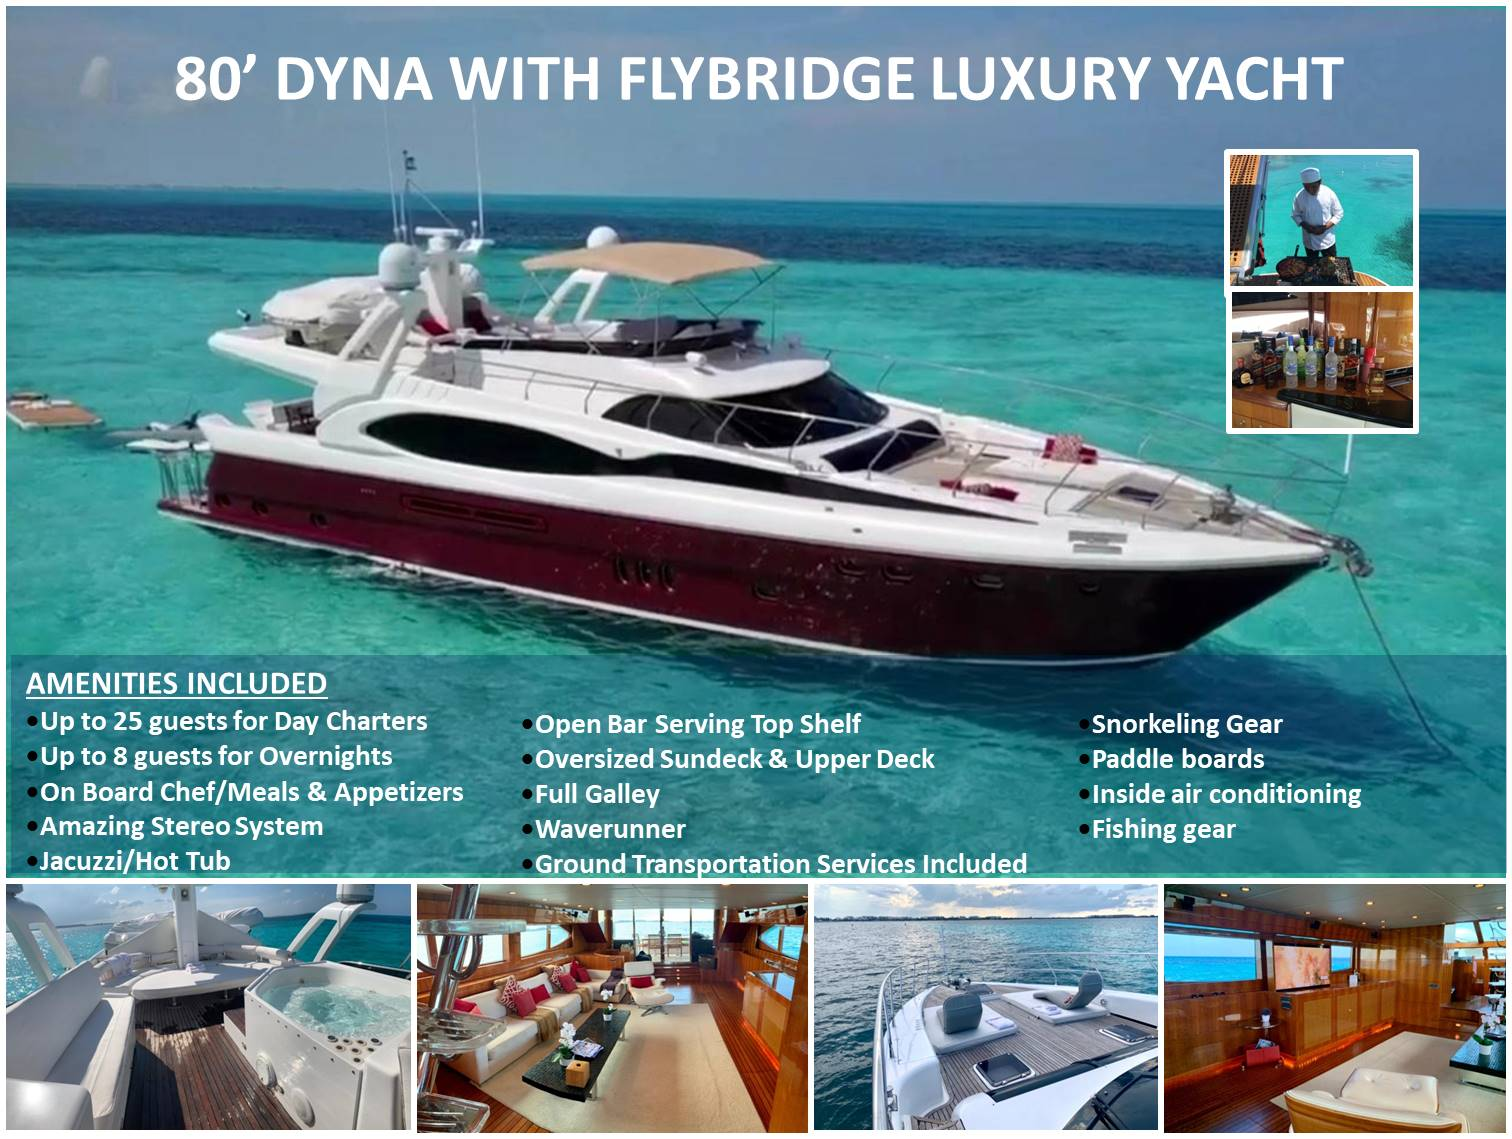 80' DYNA WITH FLYBRIDGHE LUXURY YACHT